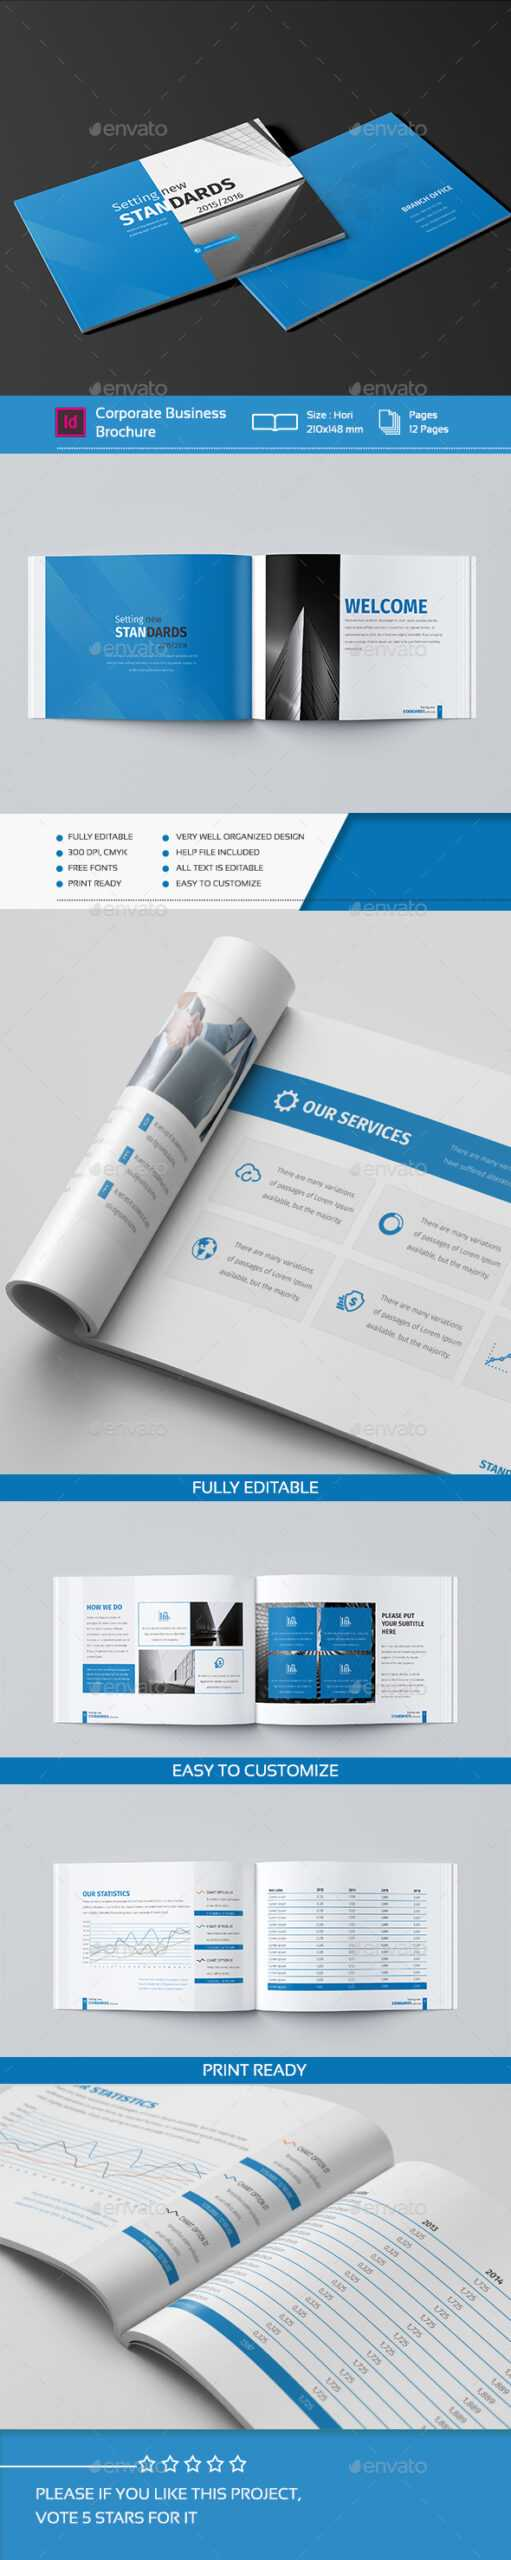 Design And Mini Graphics, Designs & Templates From Pertaining To 12 Page Brochure Template